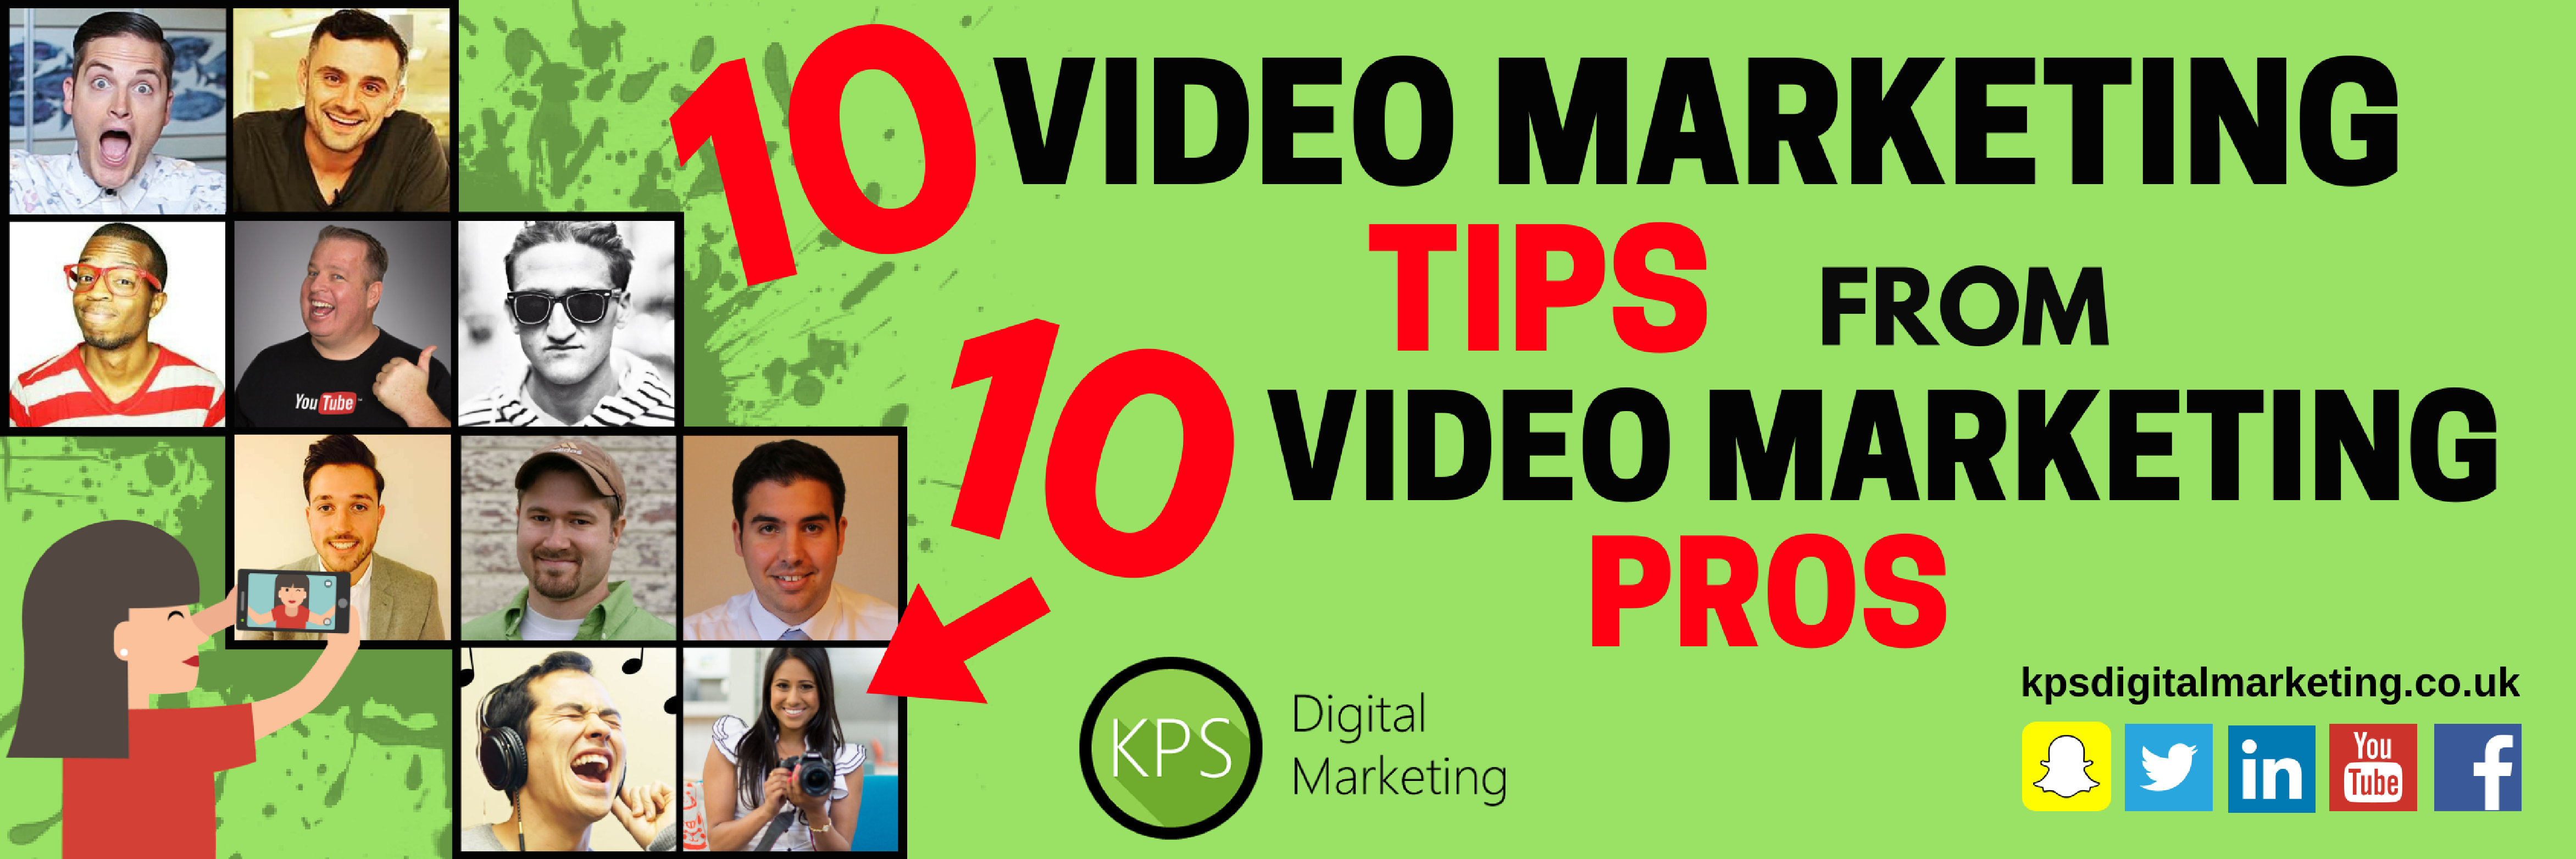 10 video marketing tips from 10 video marketing pros